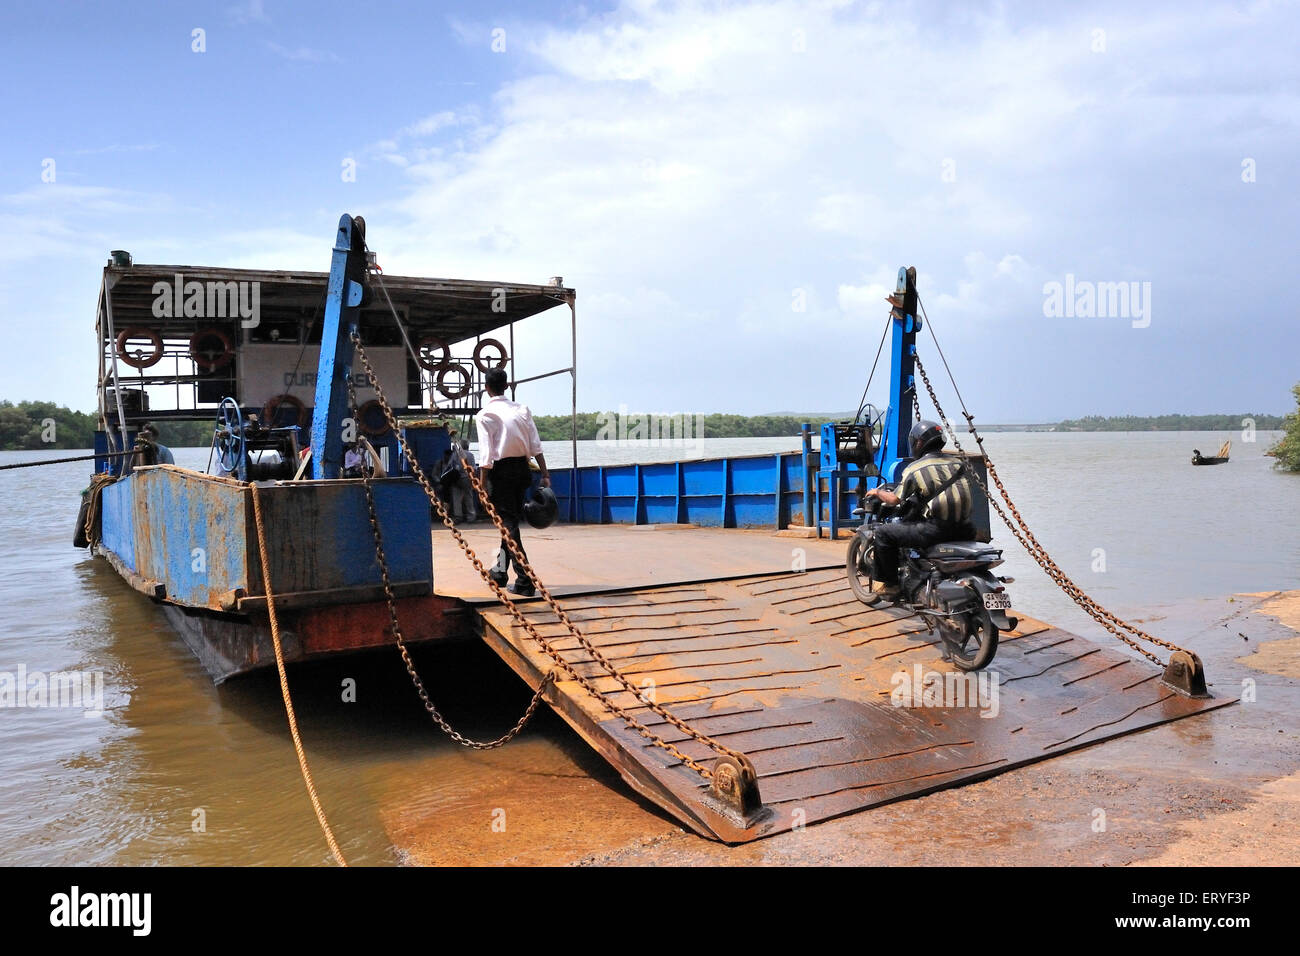 Shipping ; ferryboat in river Madovi ; Old Goa ; India - Stock Image